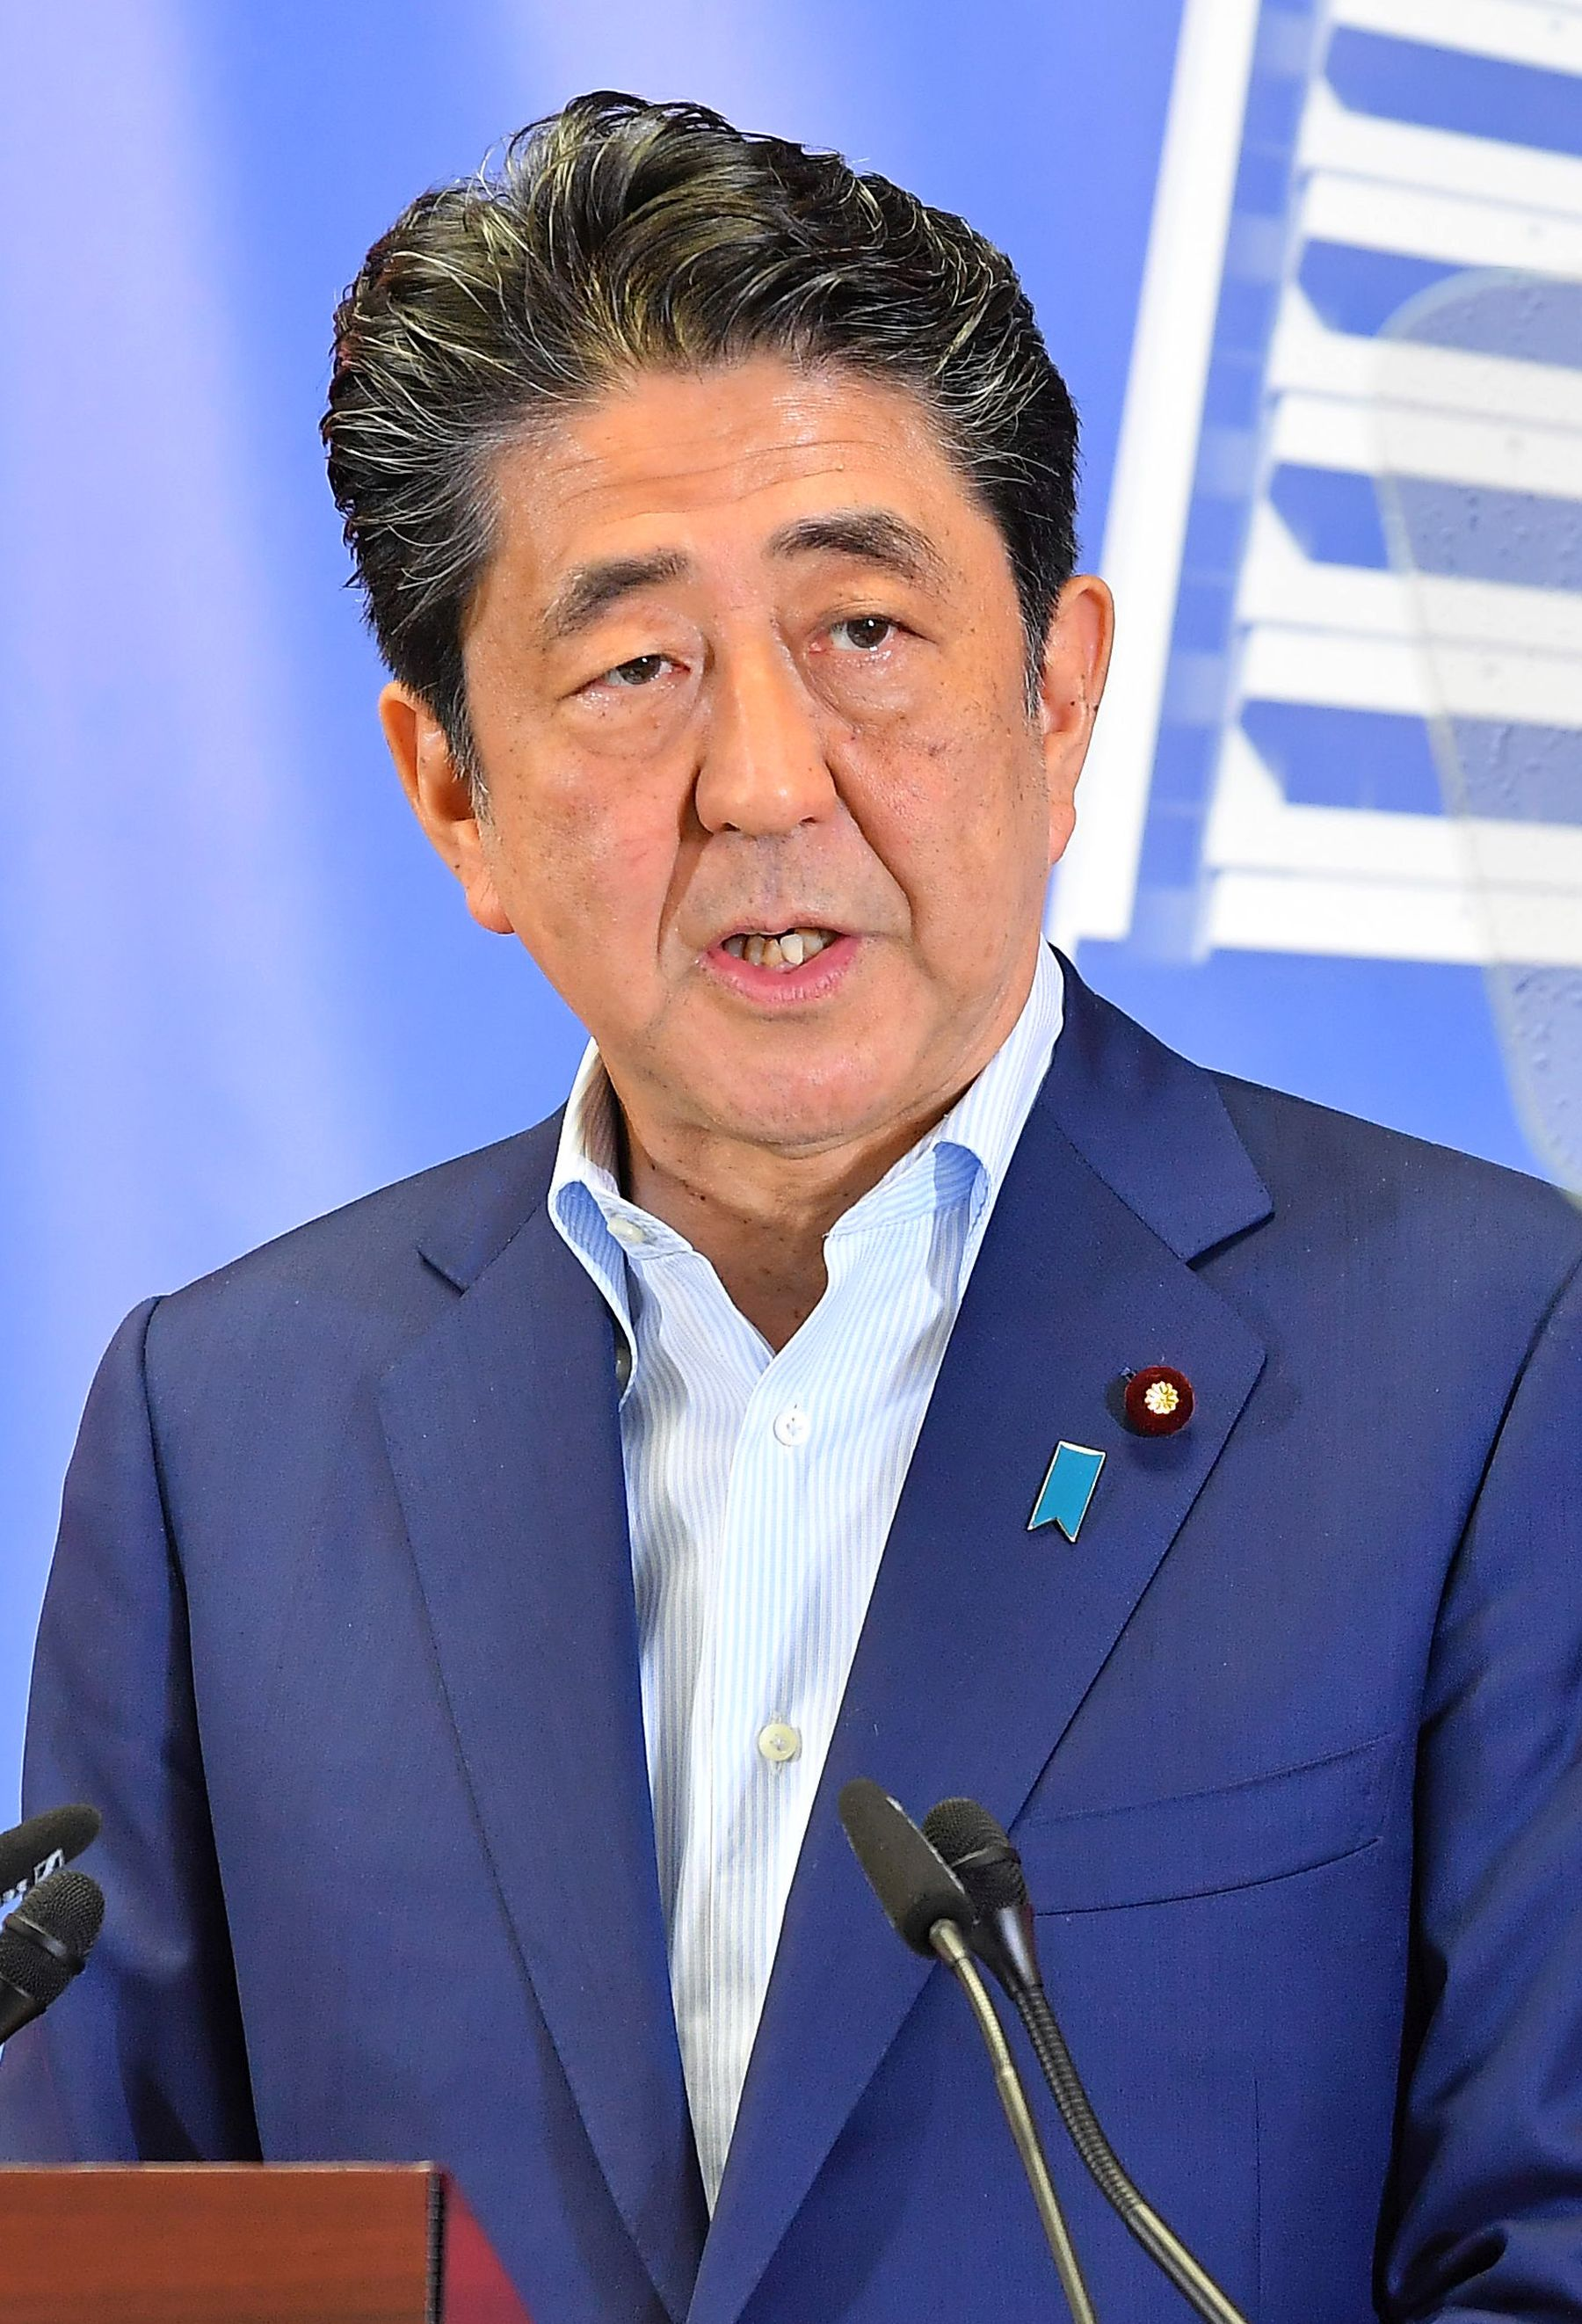 Japan PM Shinzo Abe after the Victory at the Upper House Election